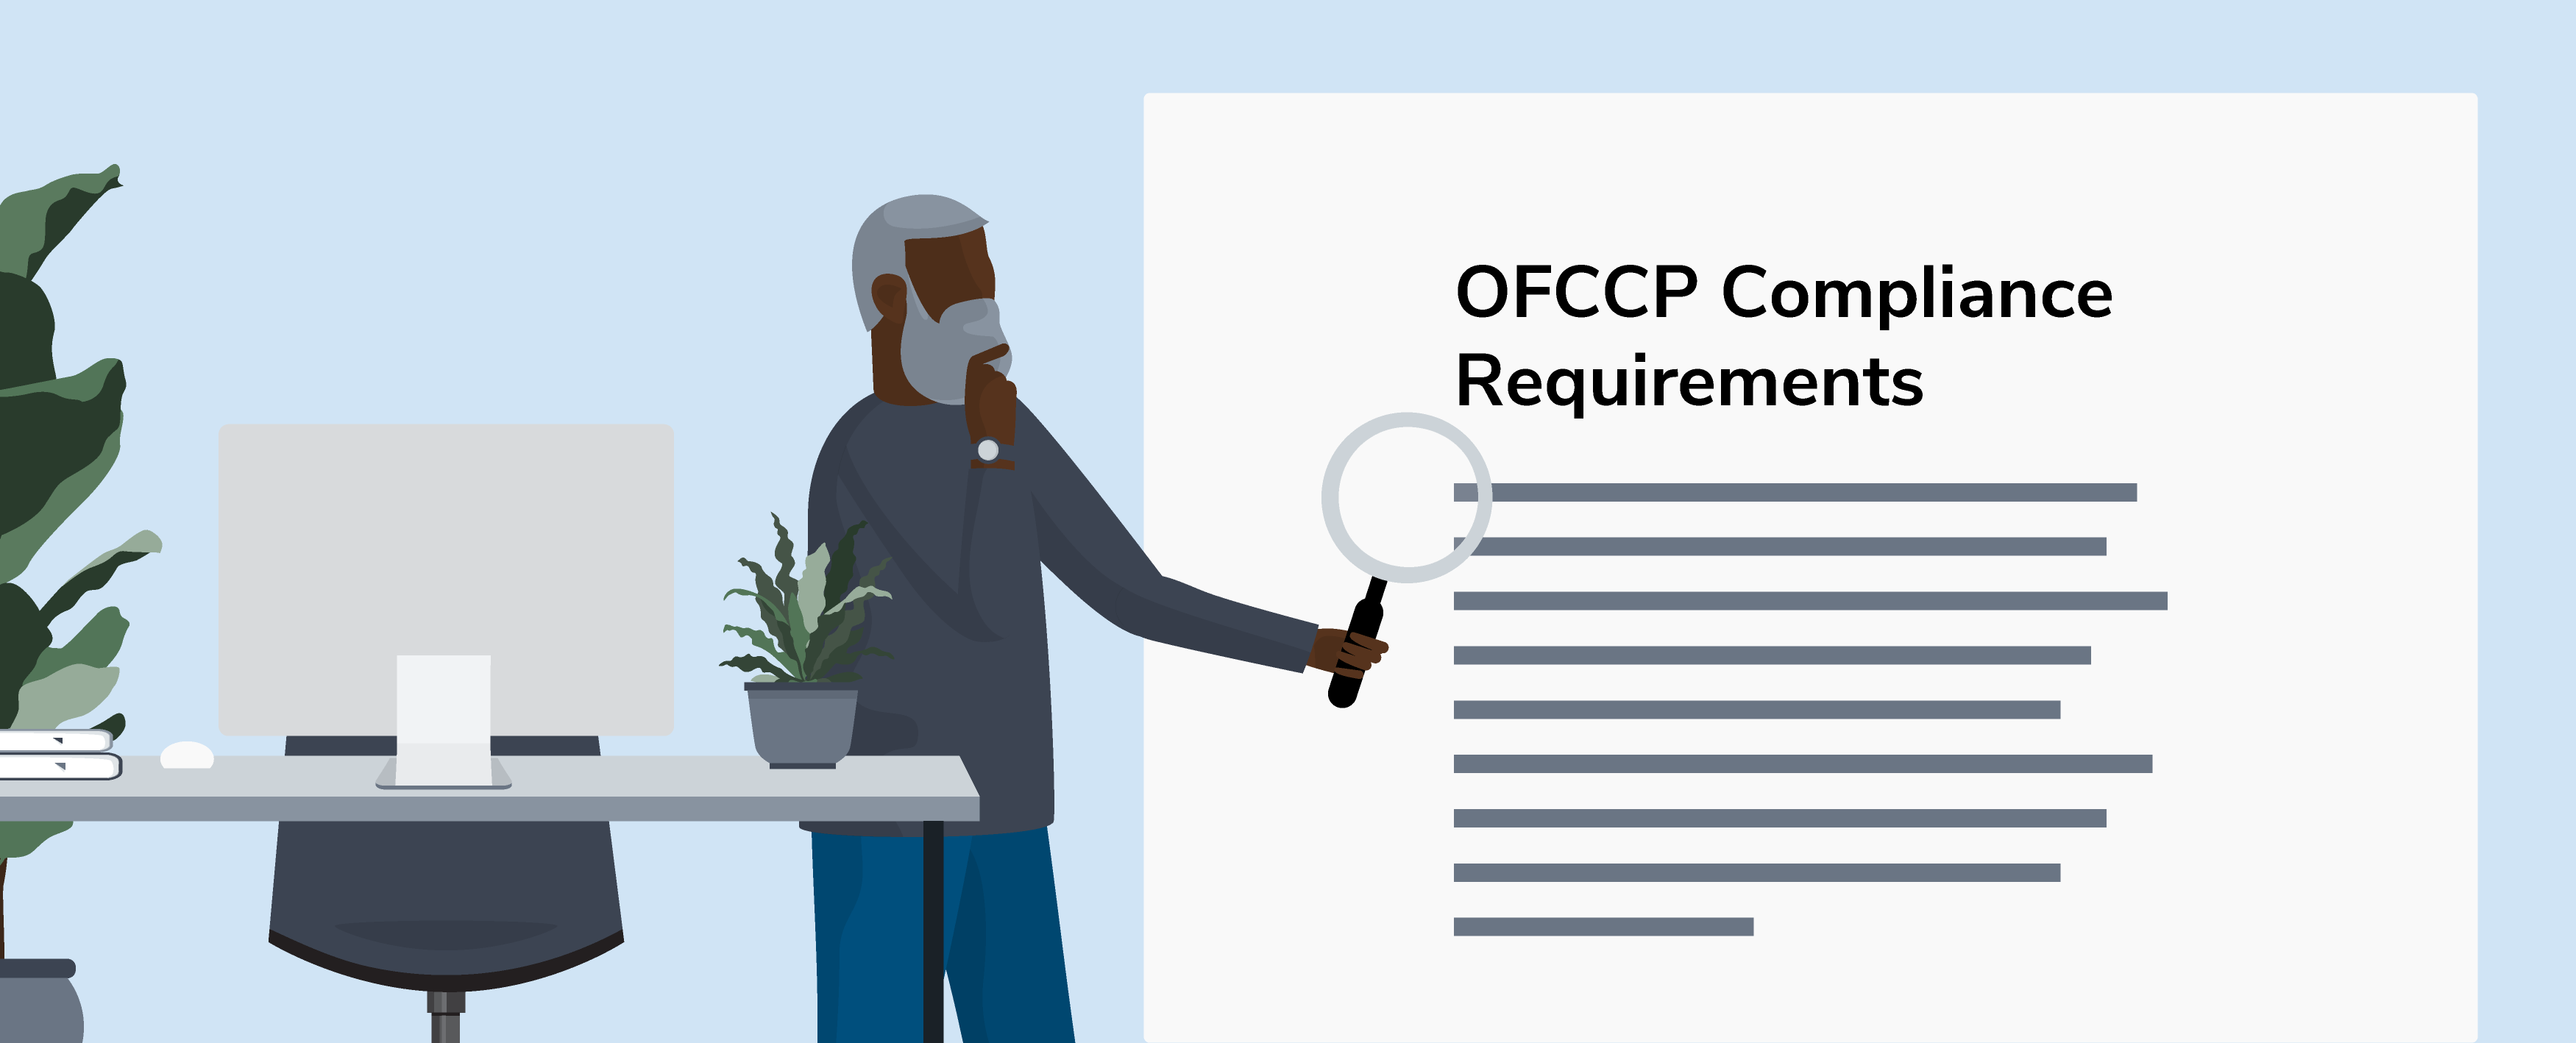 OFCCP Compliance Requirements